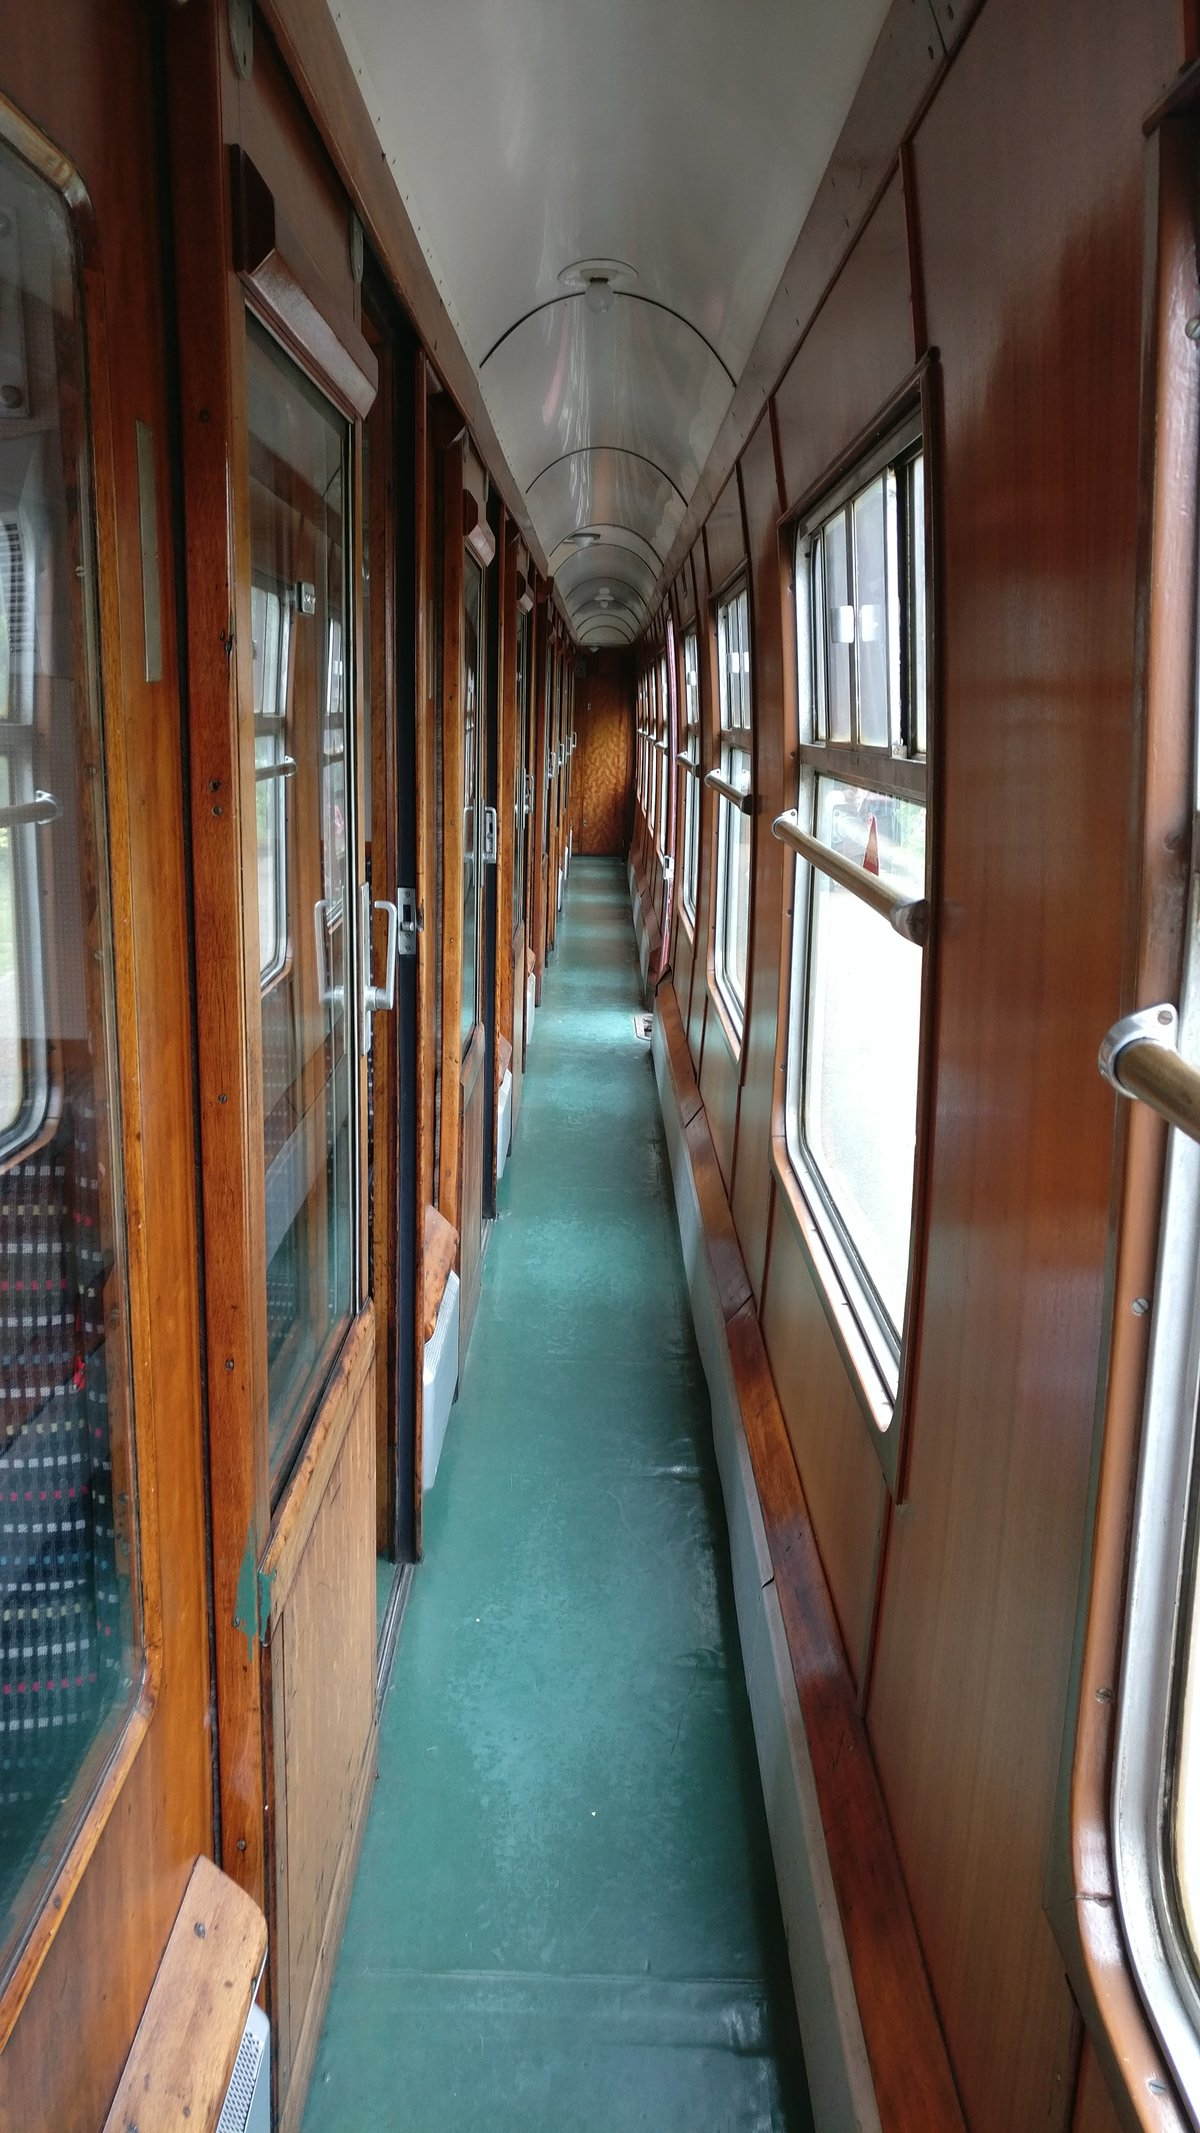 Inside old, compartment train carriage